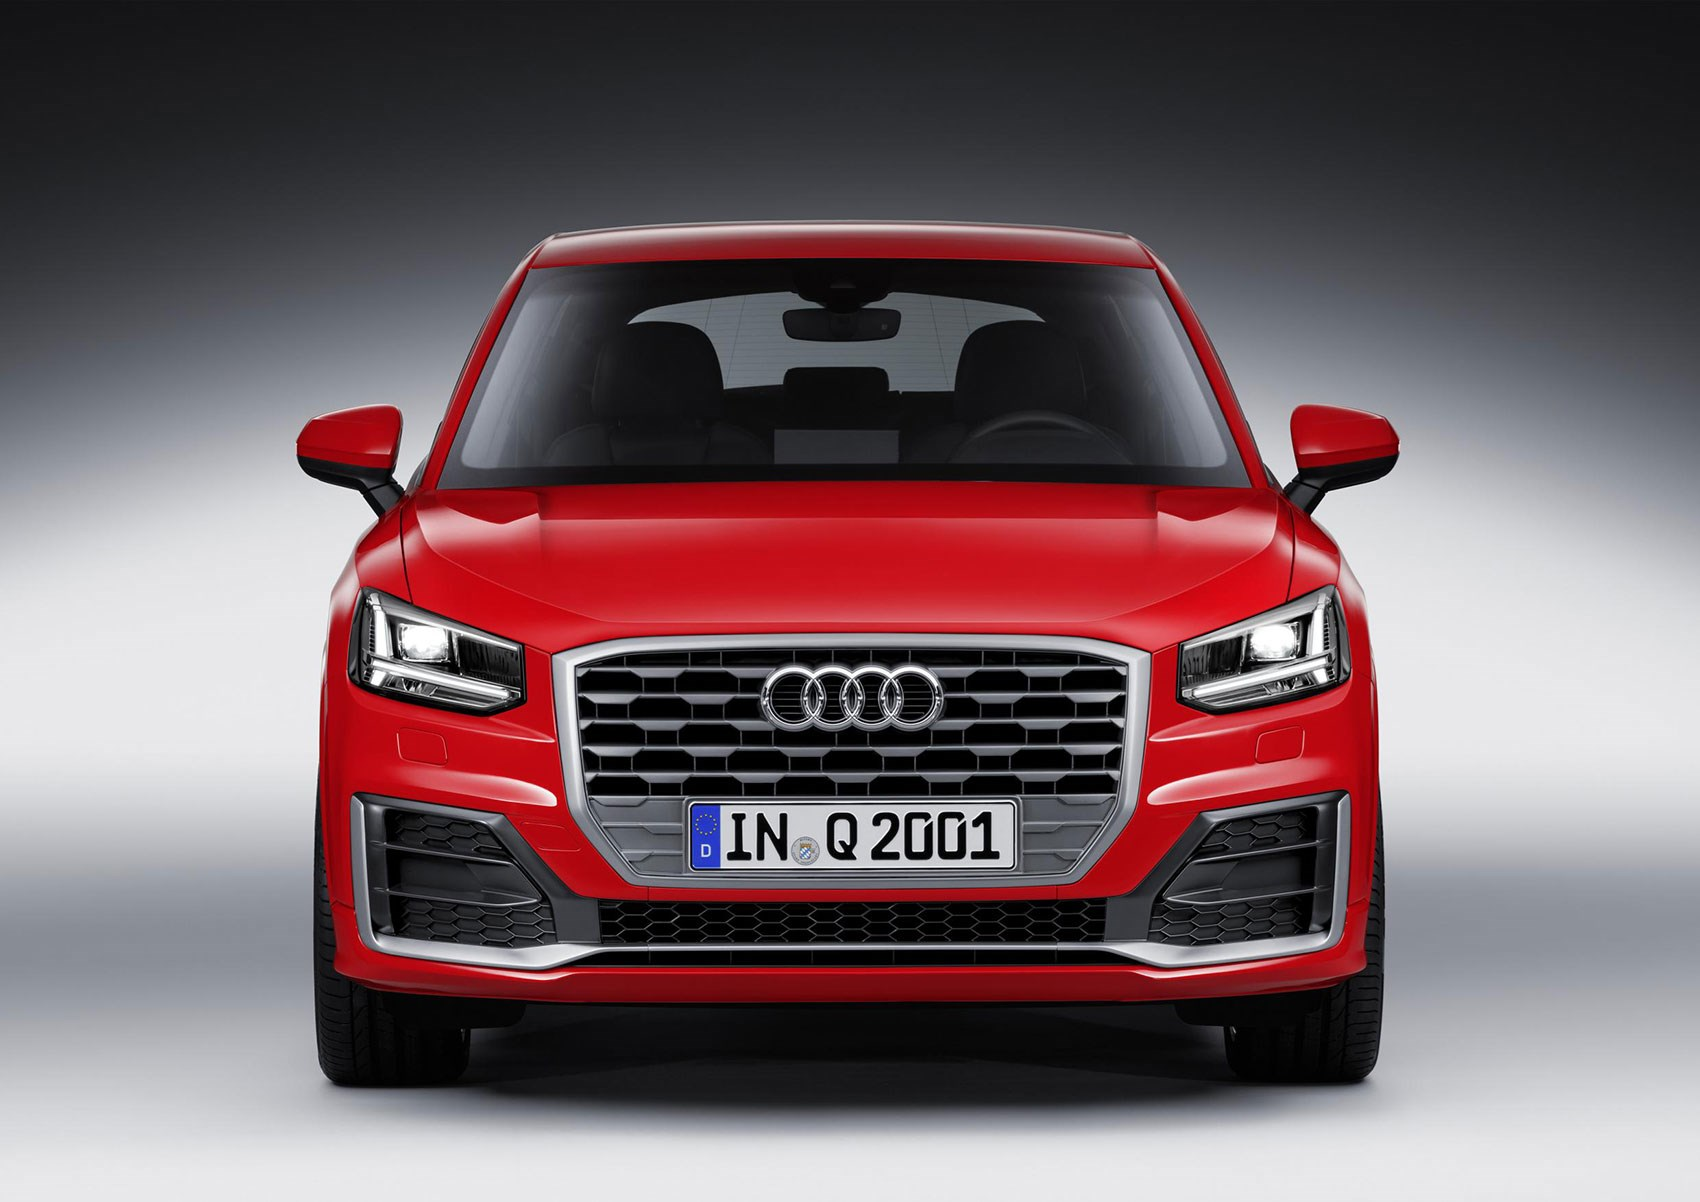 Audi Q In Pictures New SUV Lands At Geneva Show By CAR Magazine - Audi car q2